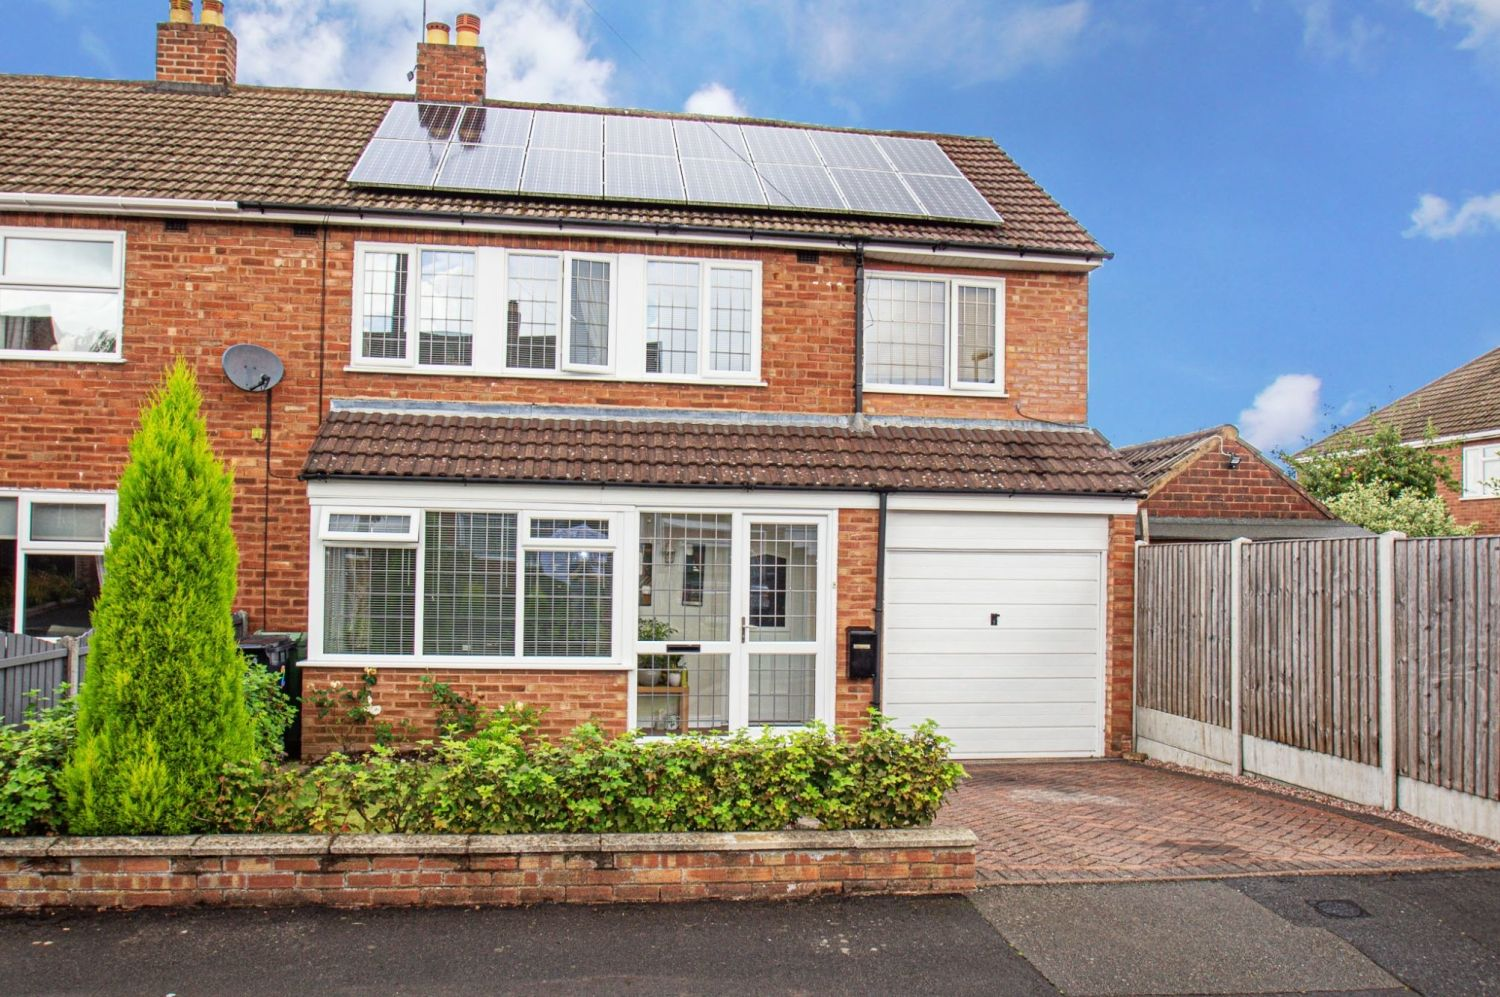 4 bed semi-detached for sale in Wheatcroft Close, Halesowen 1